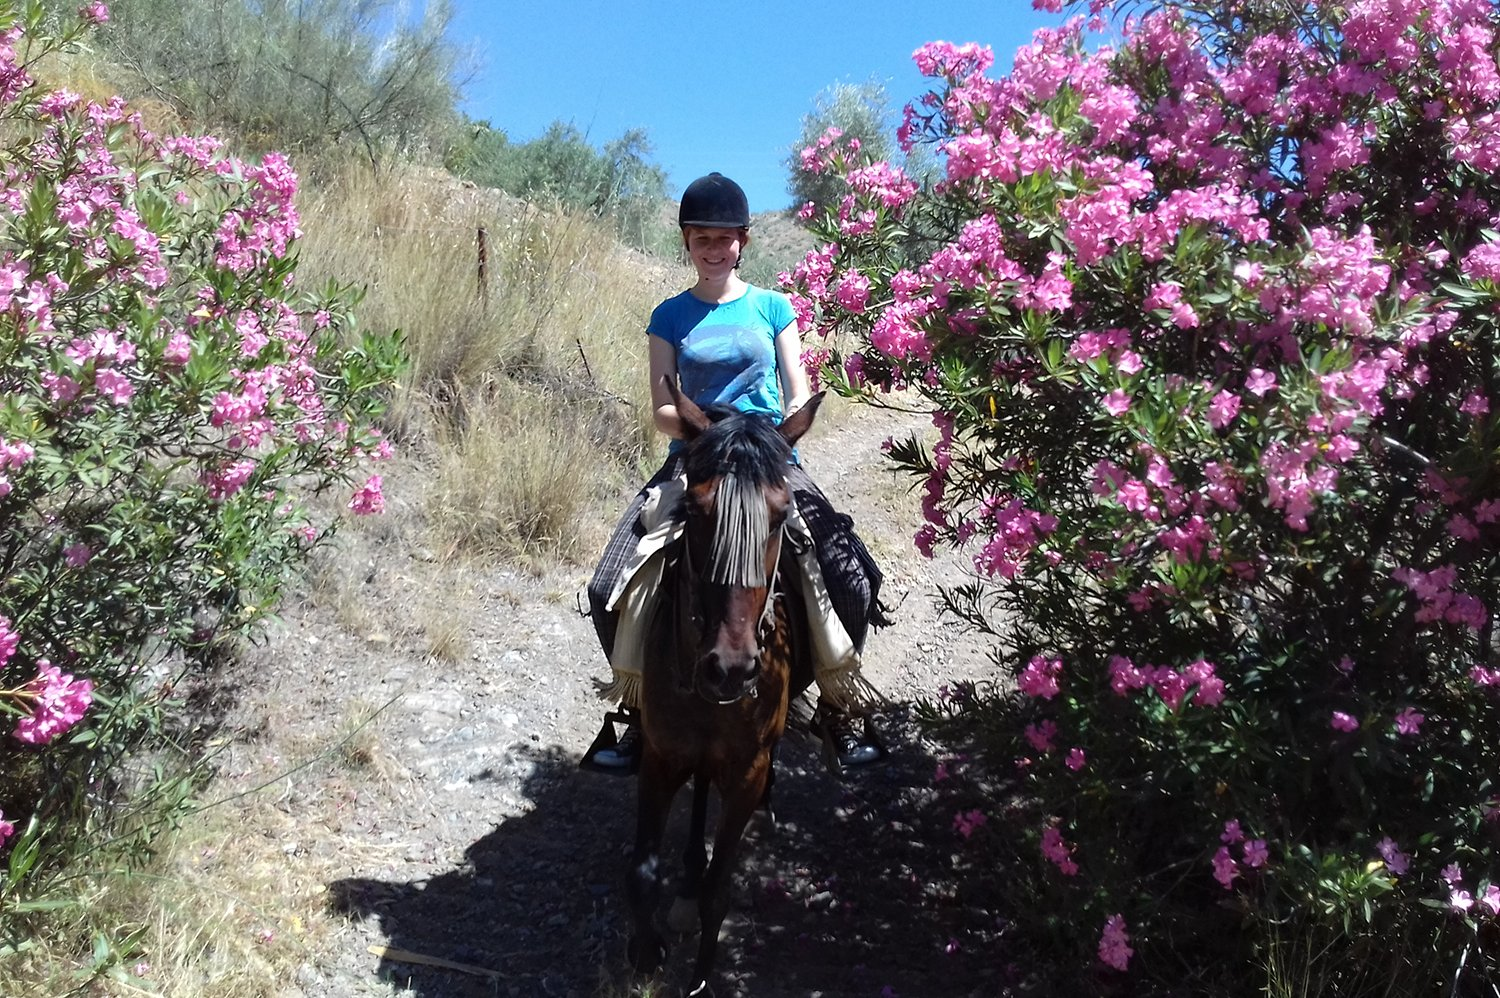 Horse Riding Spain - Horse Riding Holidays Spain Horse trekking holiday